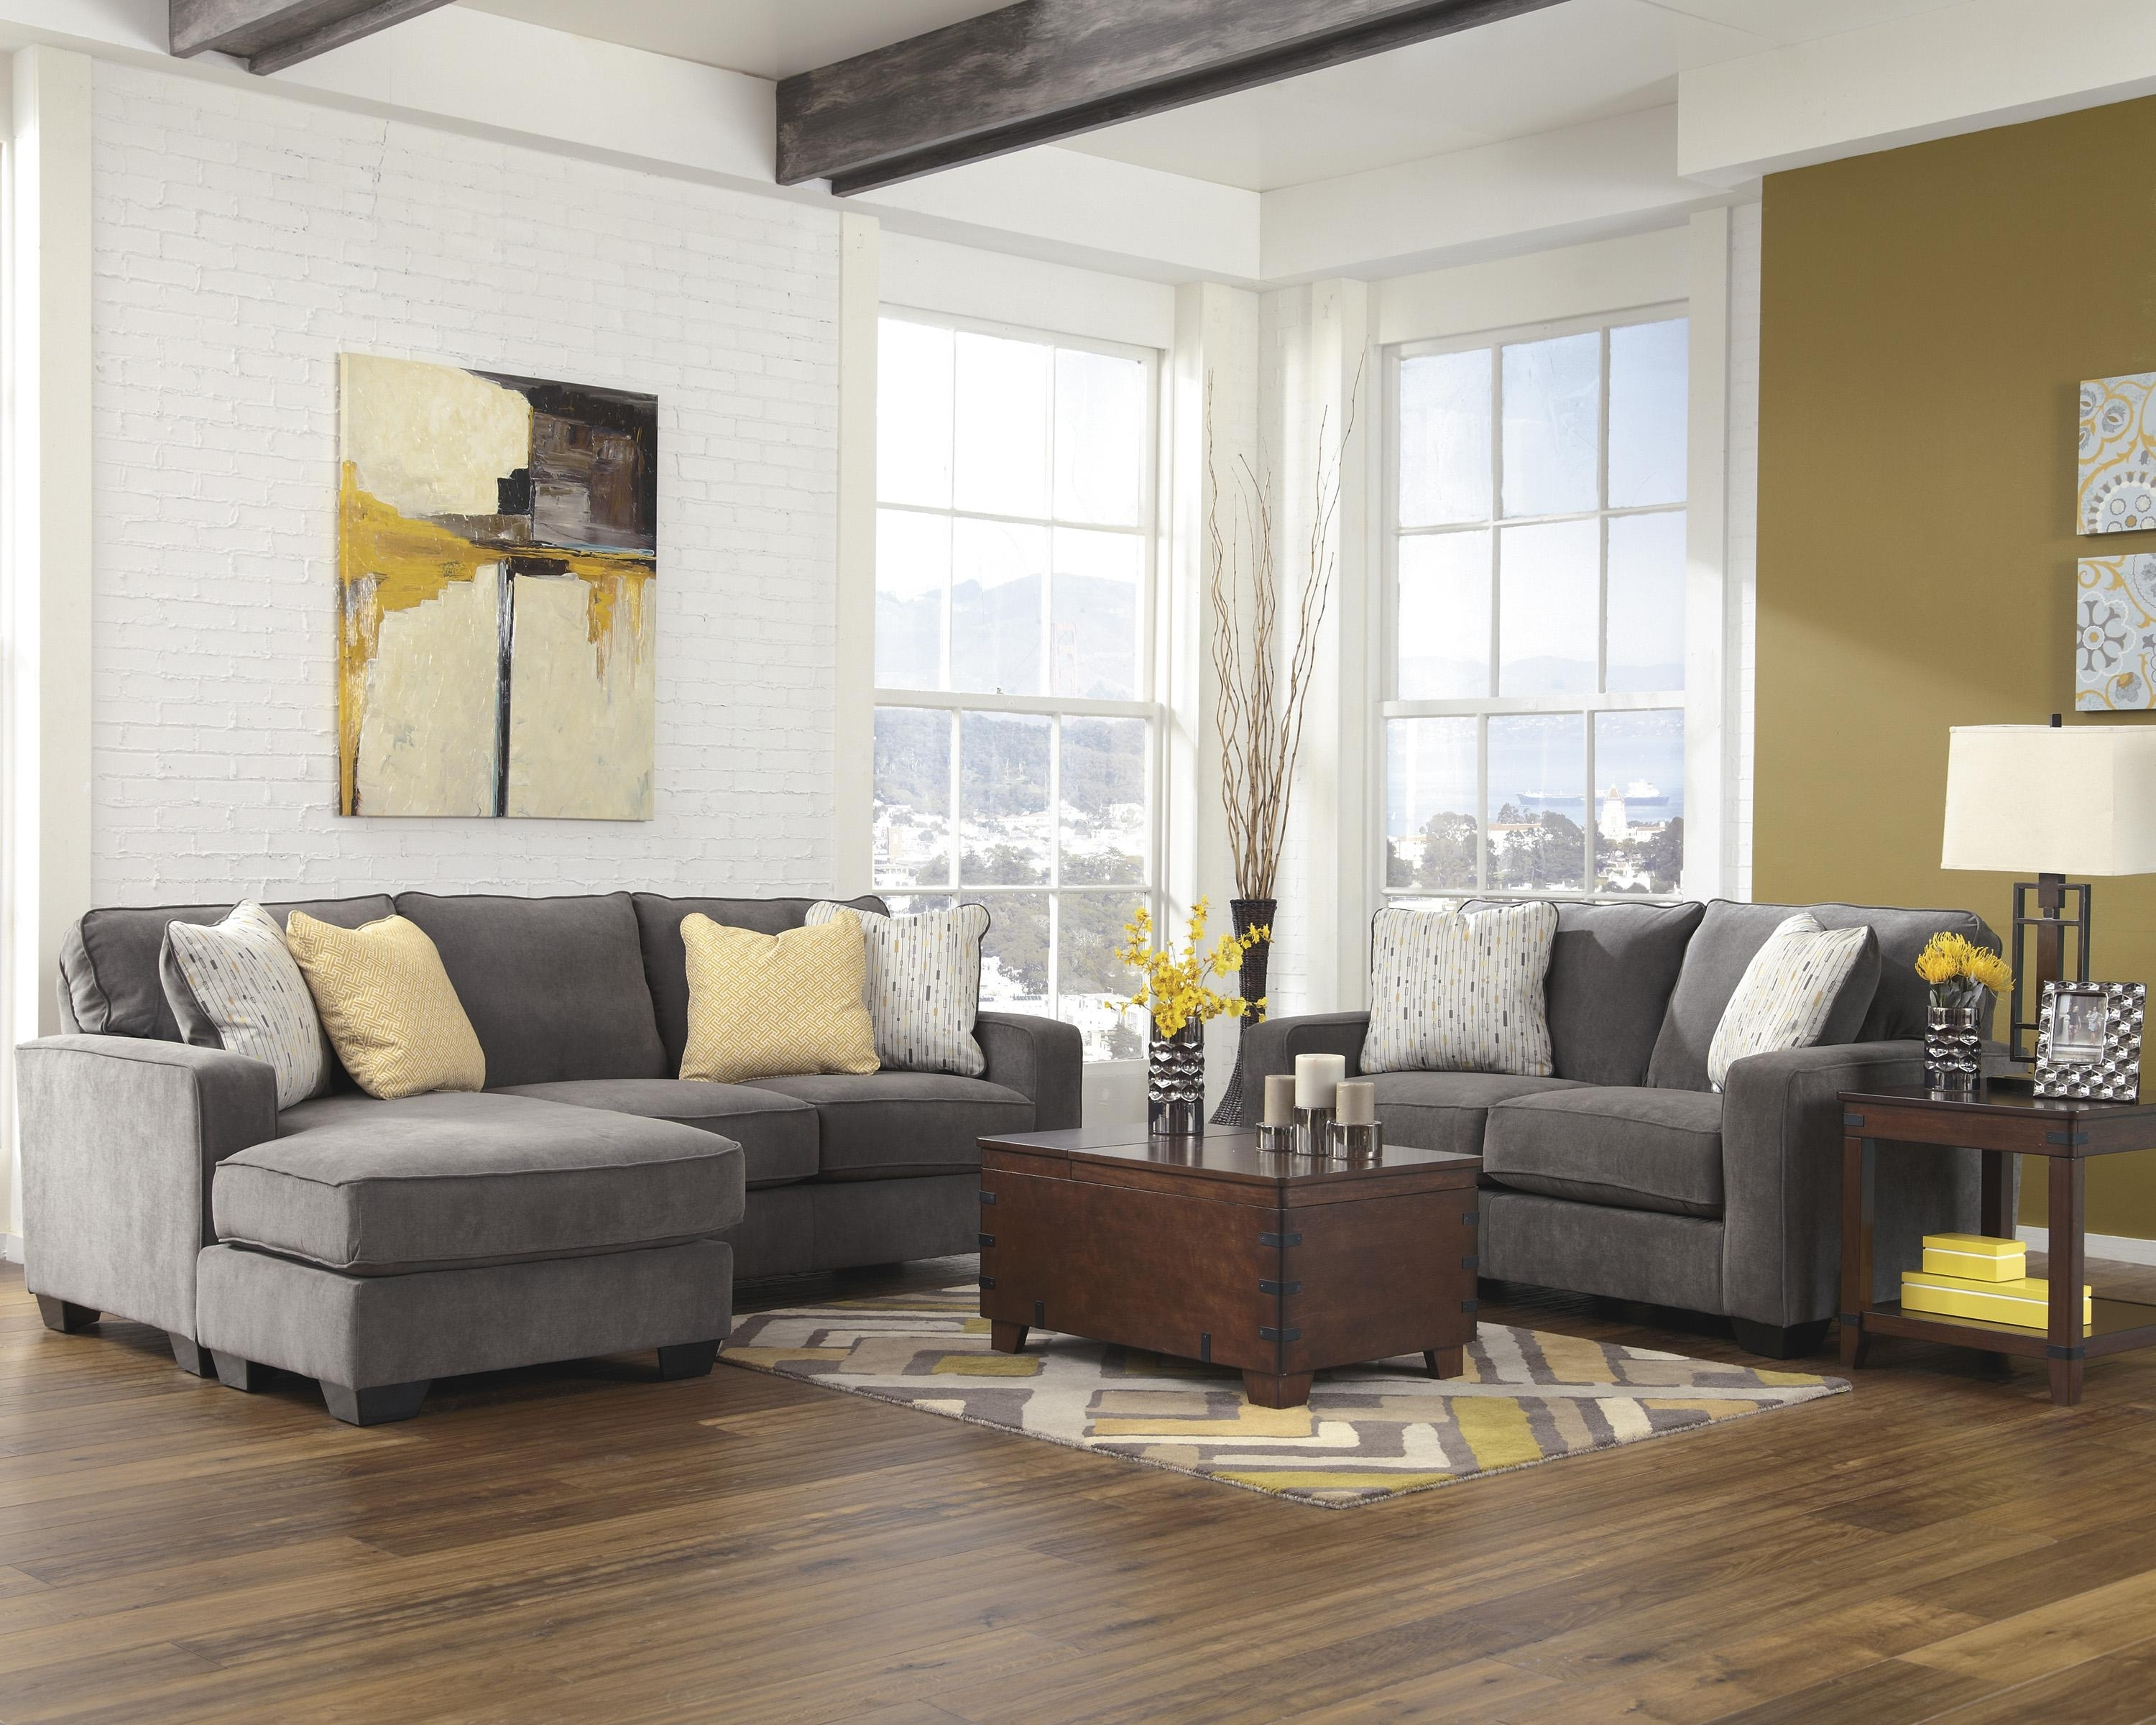 Hodan Sofas With Chaise Intended For Well Known Signature Designashley Hodan – Marble Contemporary Sofa Chaise (View 8 of 15)